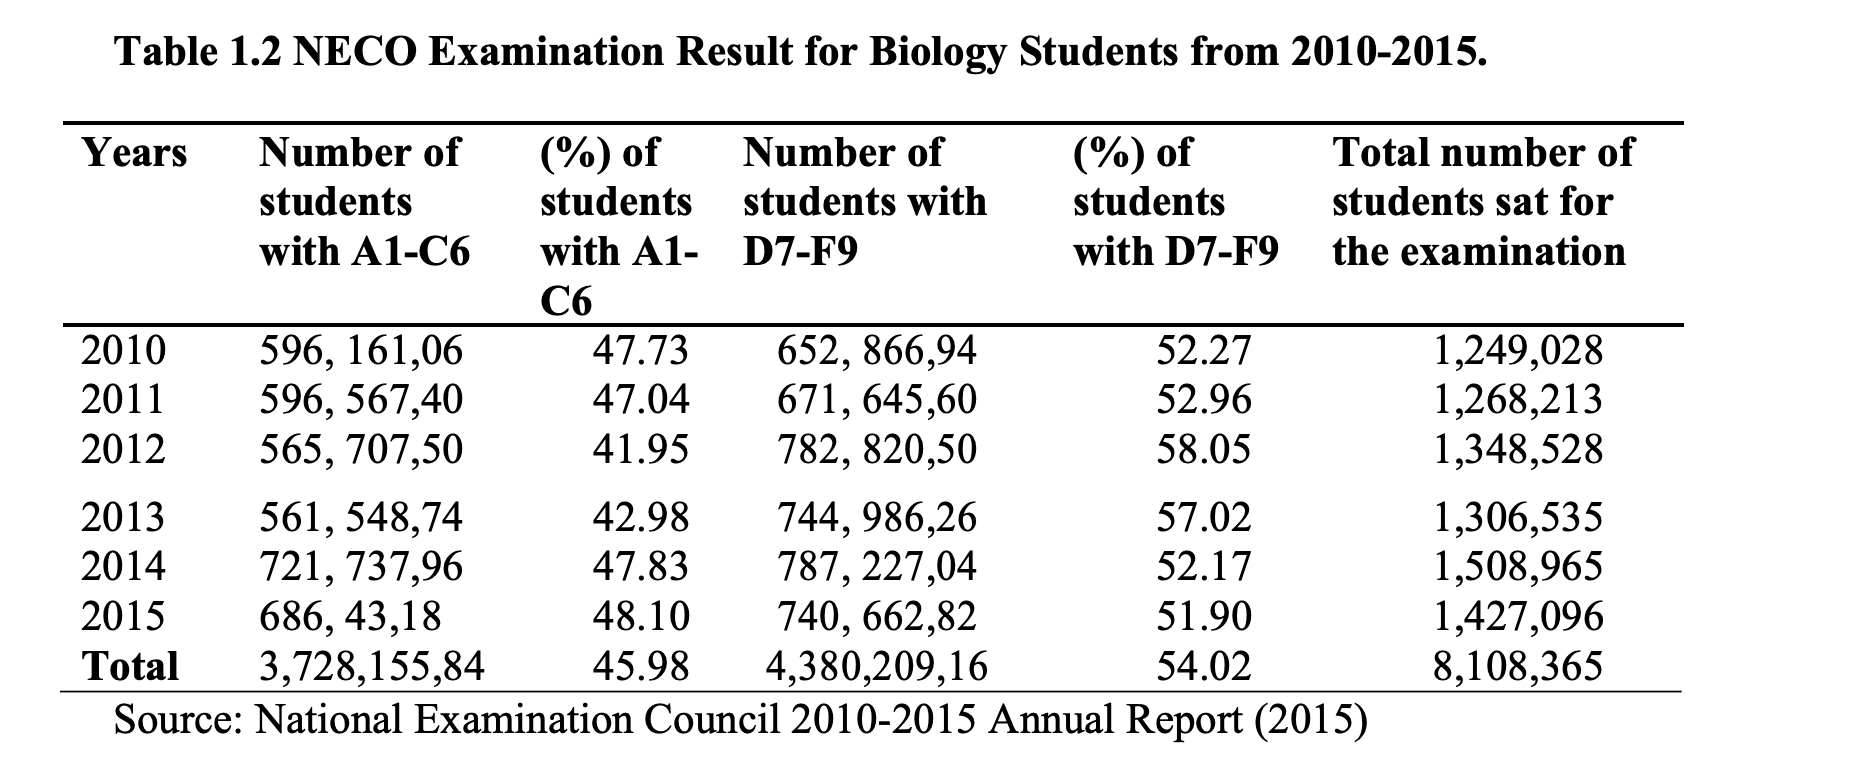 Table 1.2 NECO Examination Result for Biology Students from 2010-2015